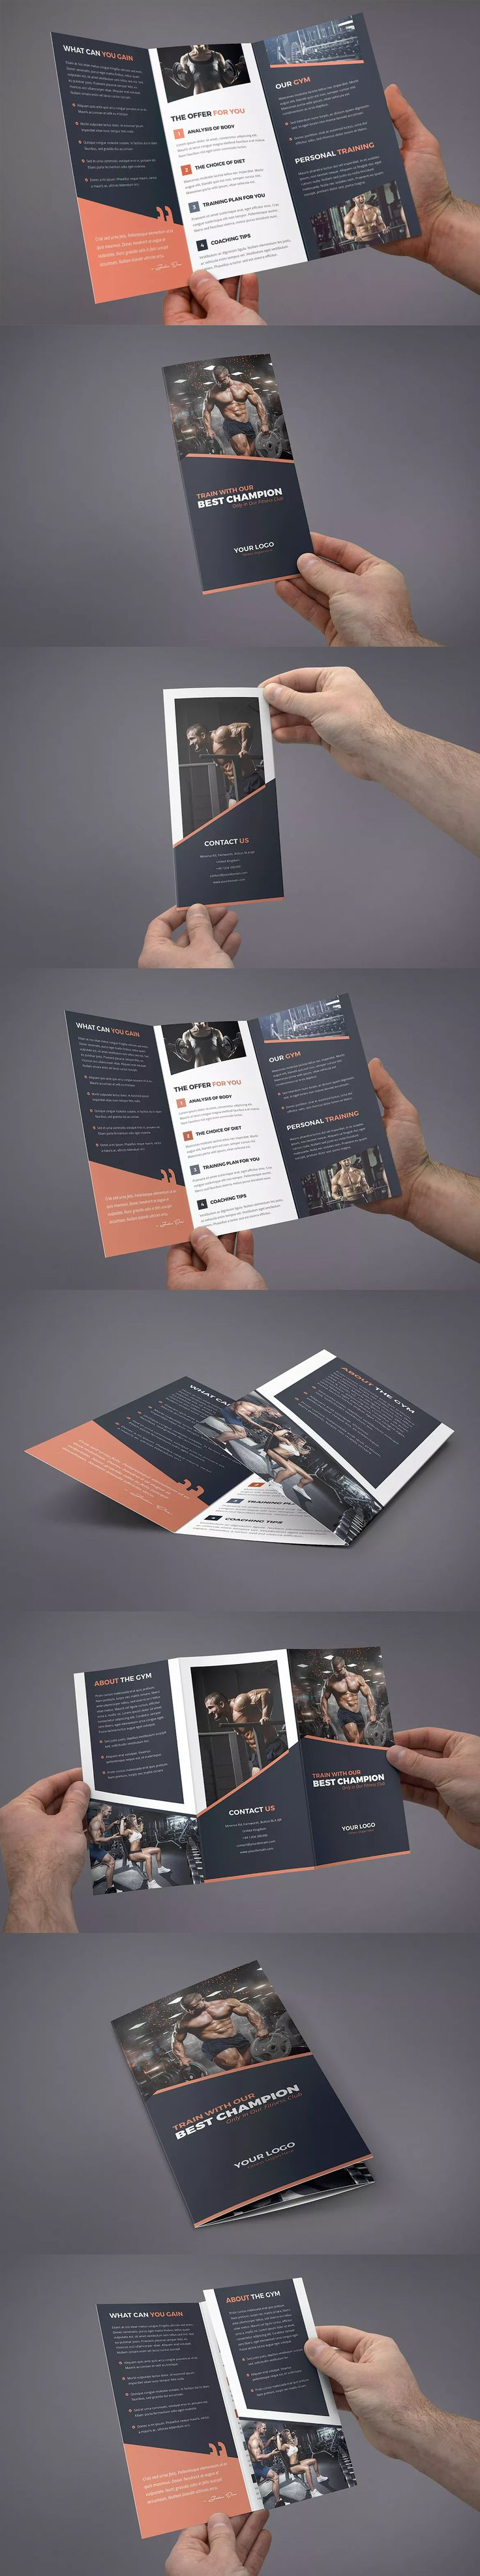 Gym Tri-Fold Brochure Template PSD - A4 and US Letter Size